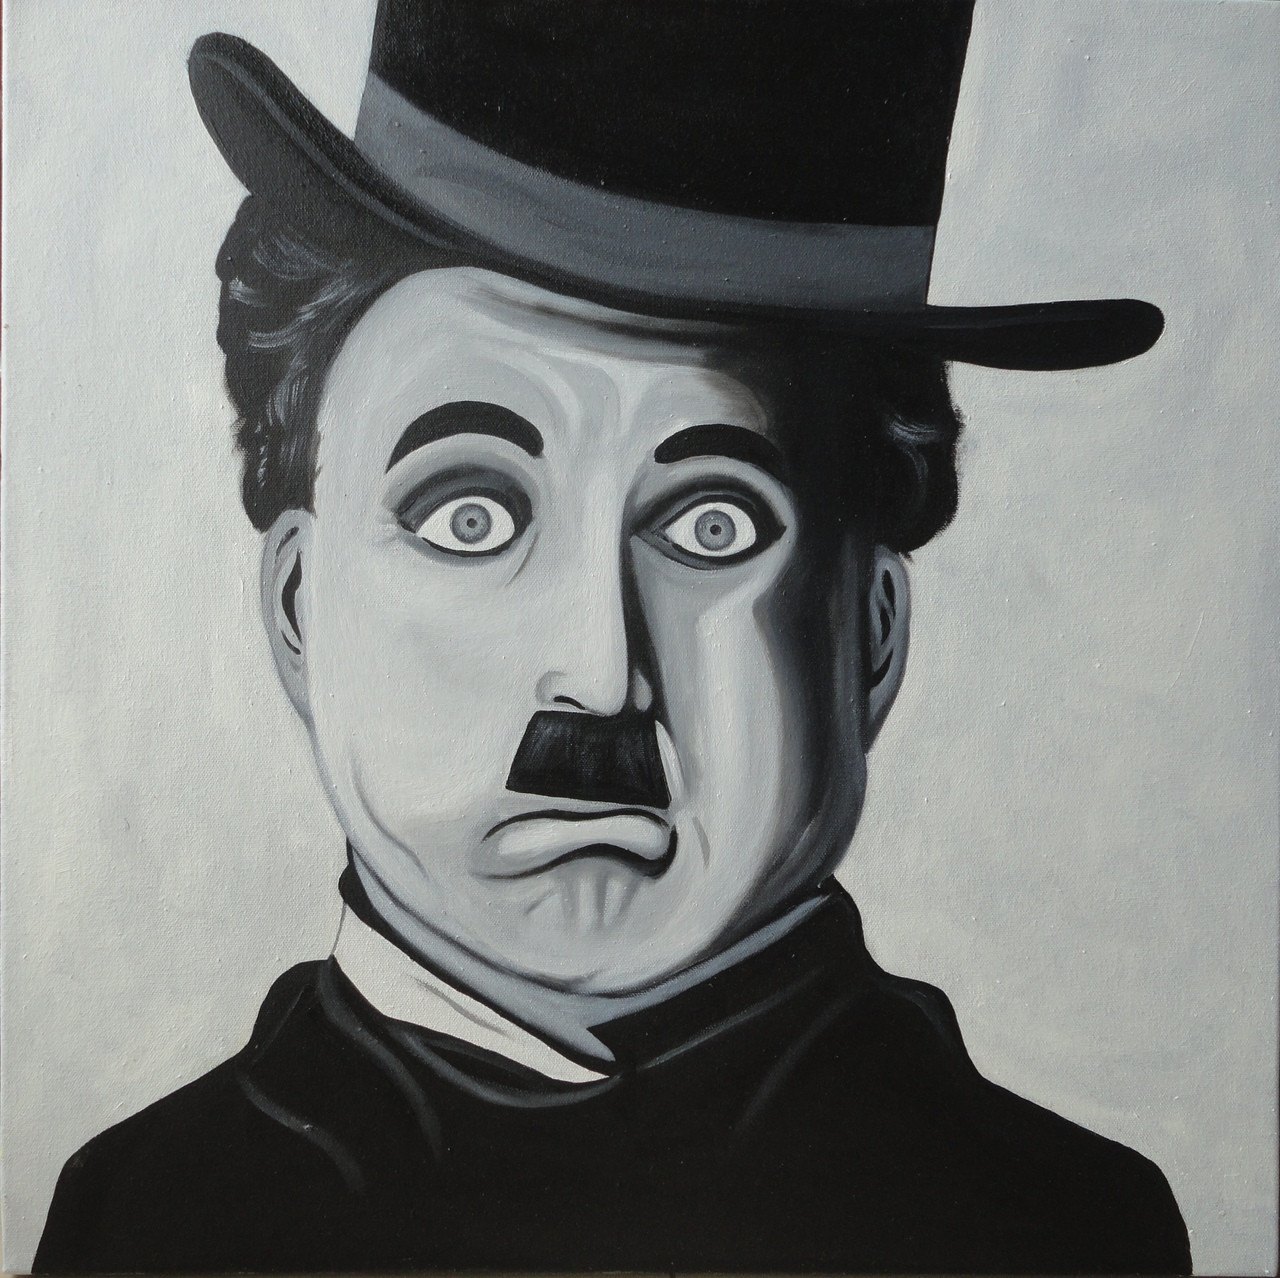 4b35e0d38a012 Buy Charlie Chaplin Handmade Painting by AMITA D. Code ART 1784 31140 -  Paintings for Sale online in India.